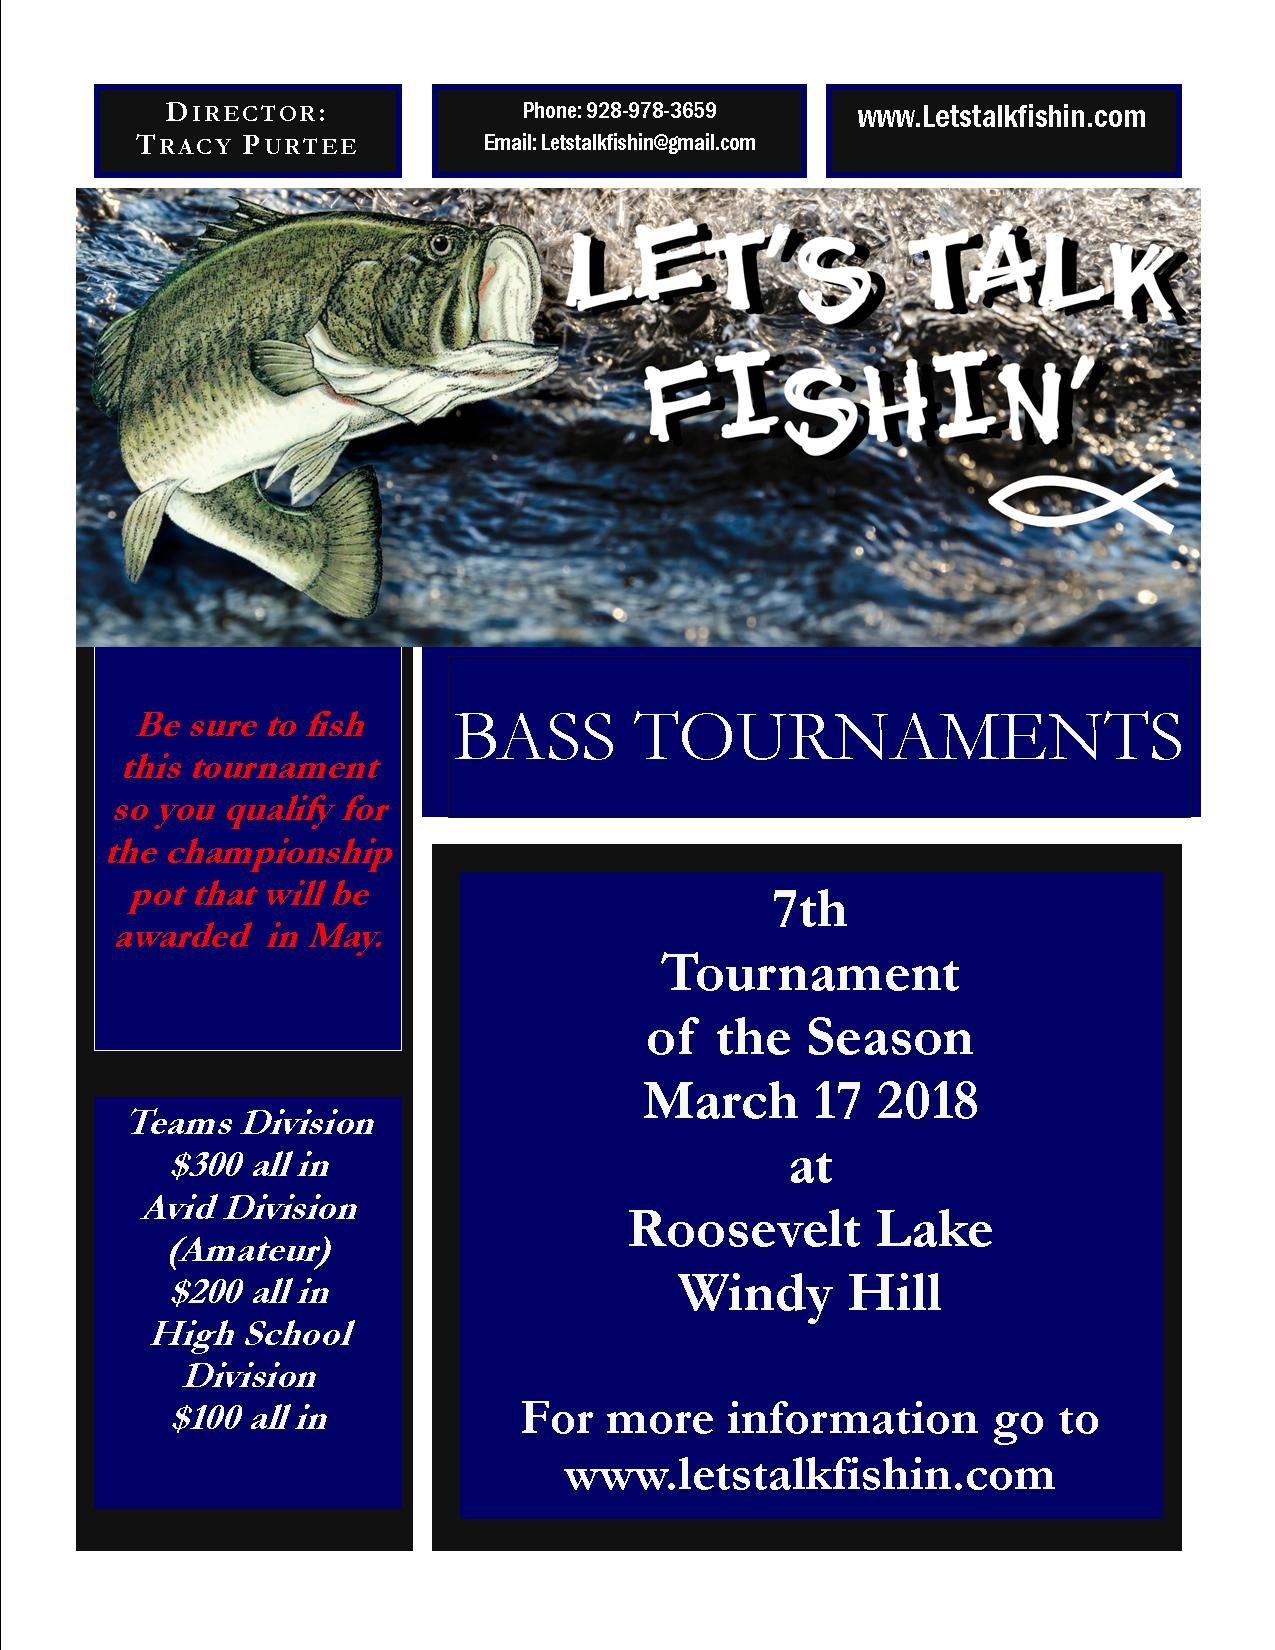 Click image for larger version  Name:7th Tournament.jpg Views:1106 Size:283.6 KB ID:96826